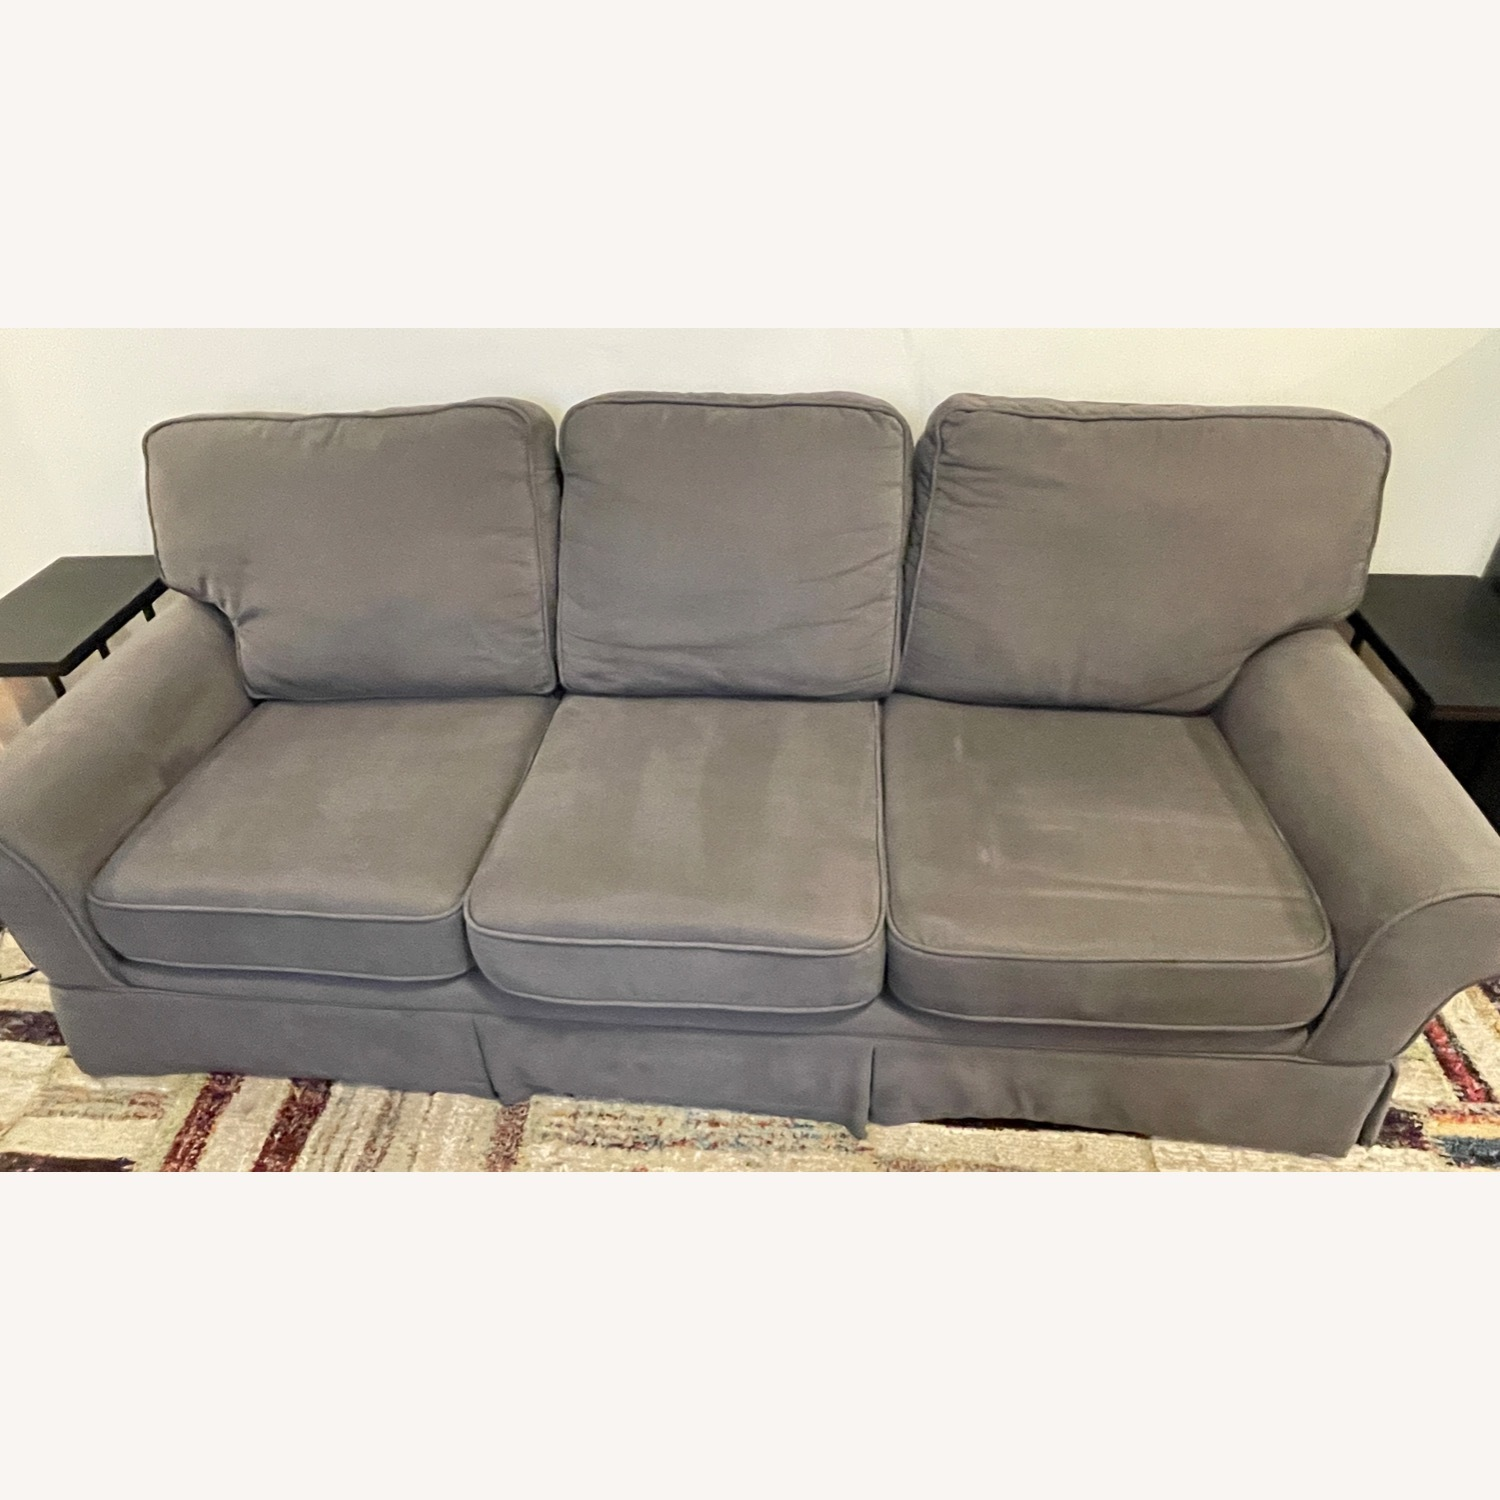 Bob's Discount Furniture 90 Couch with Queen Sleeper - image-1